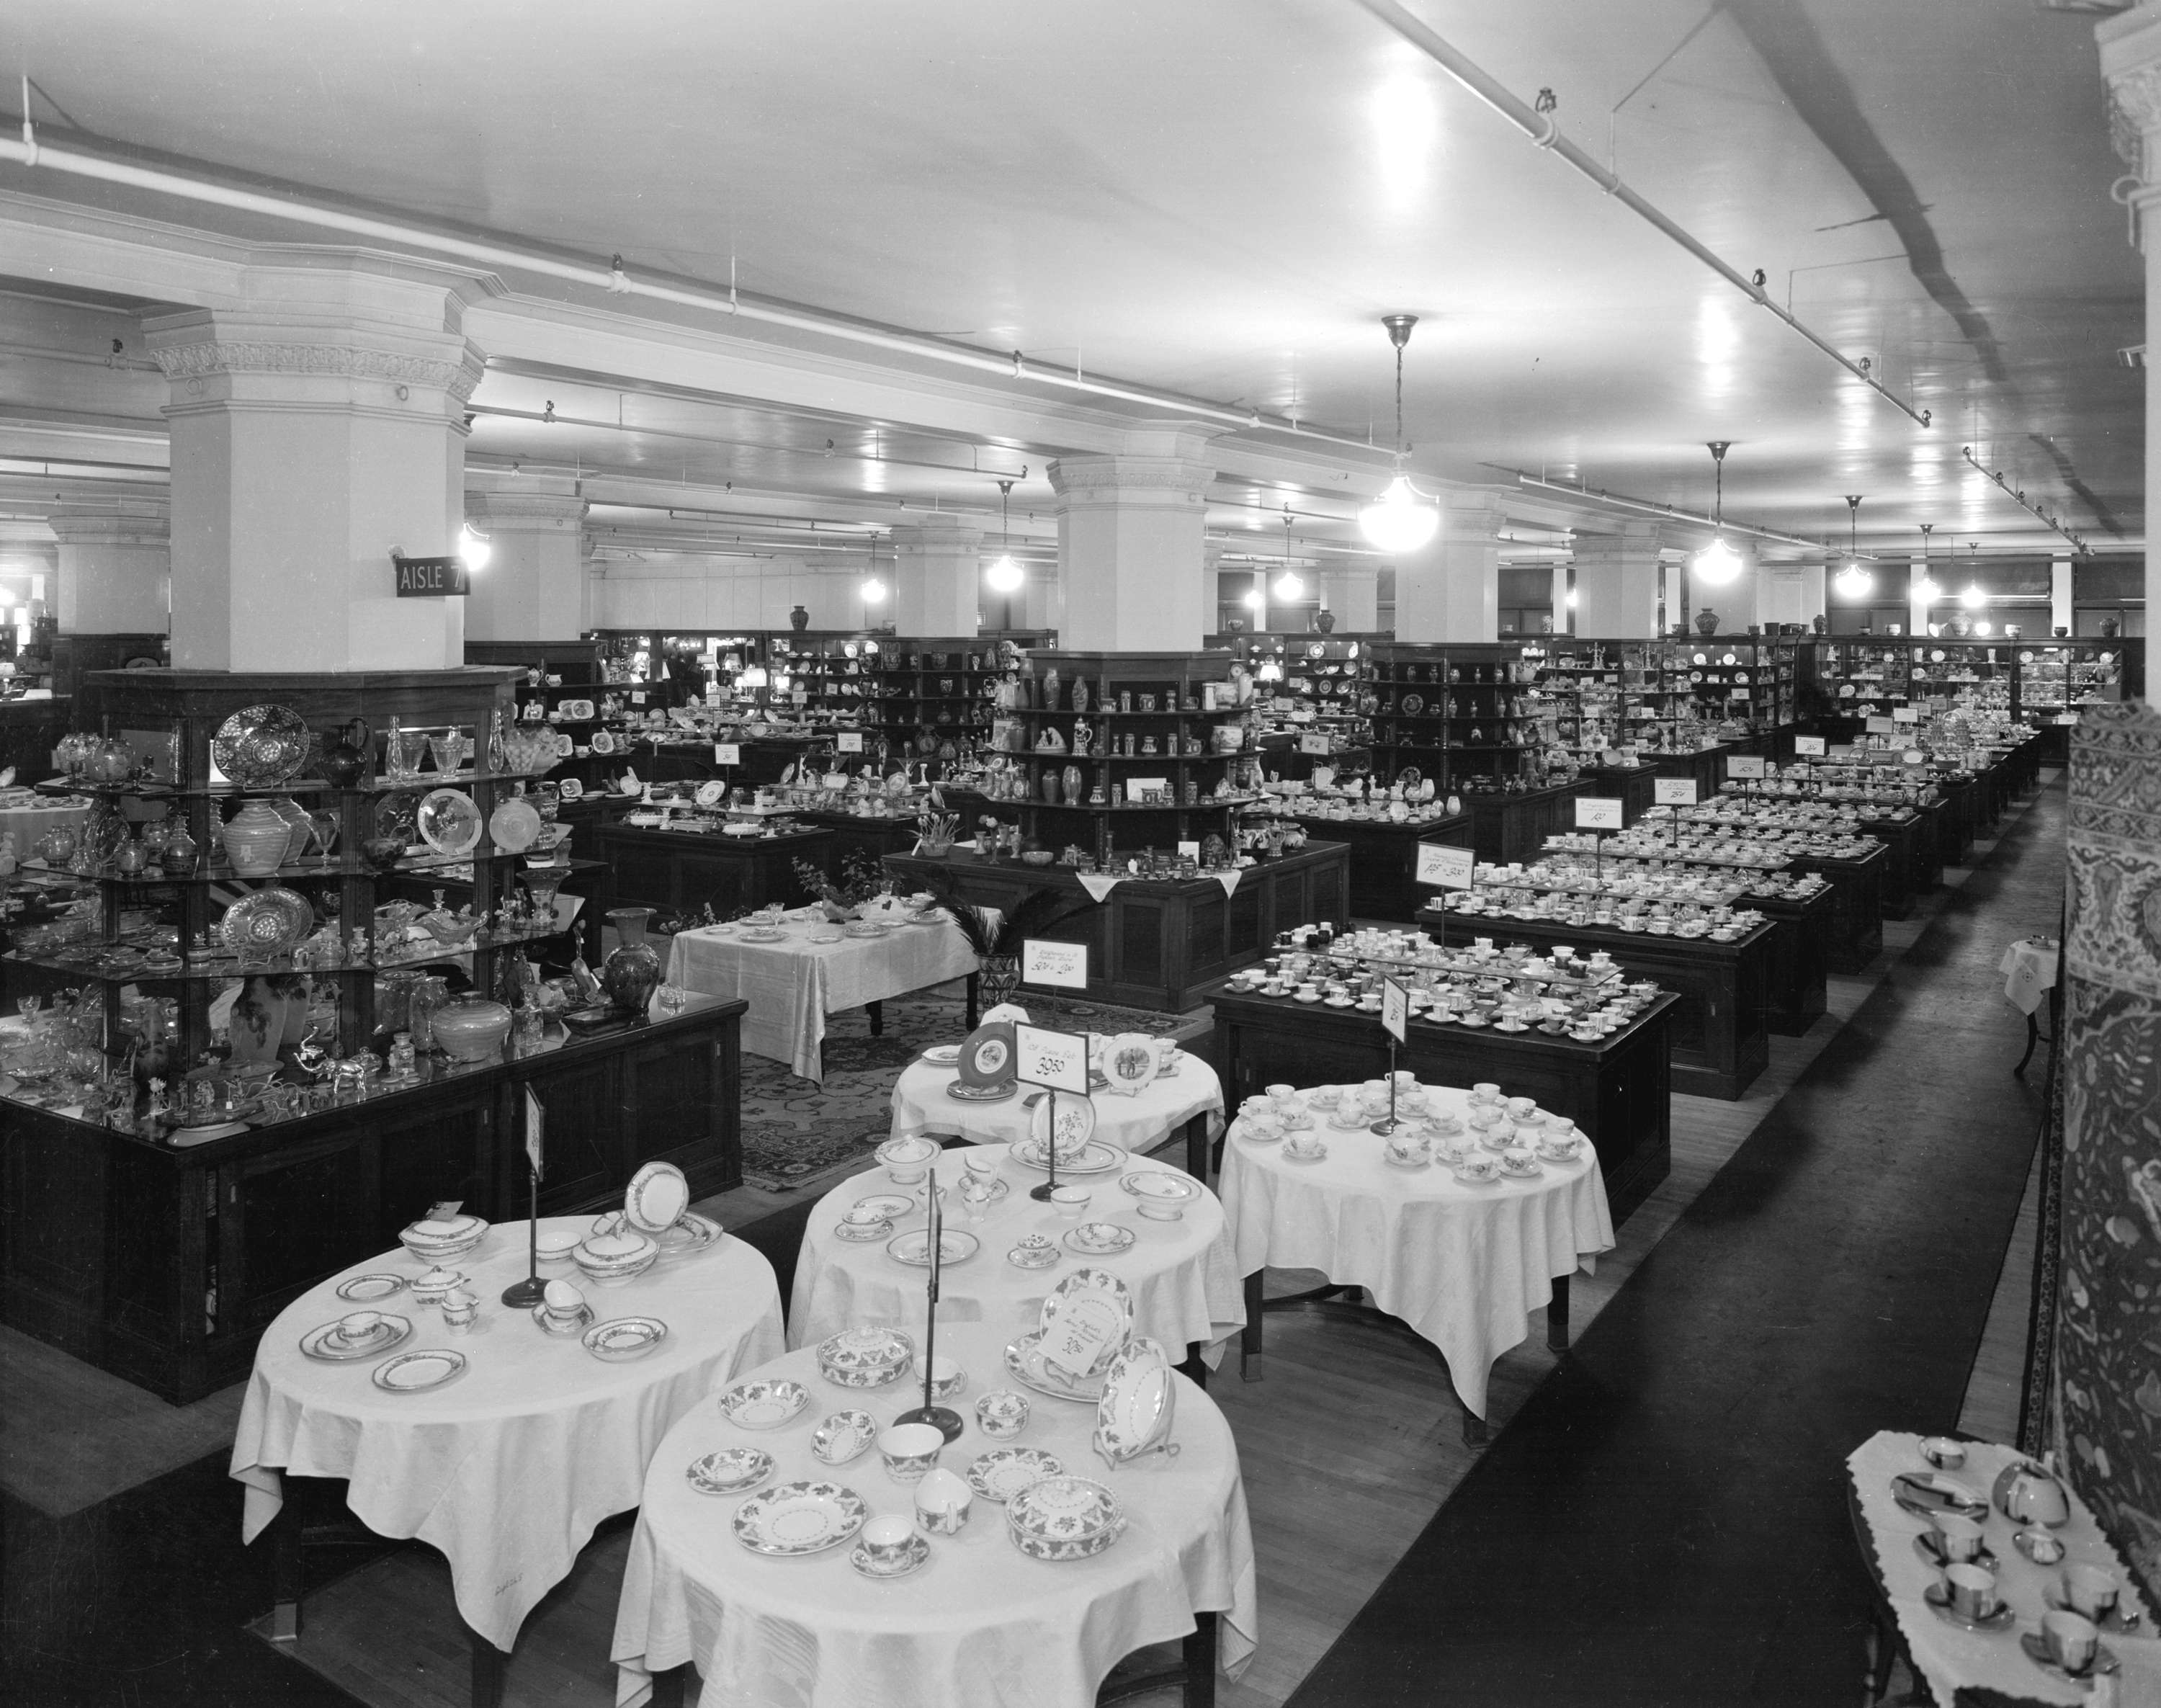 The china department at Hudson's Bay in 1931 (Stuart Thomson/HBC)